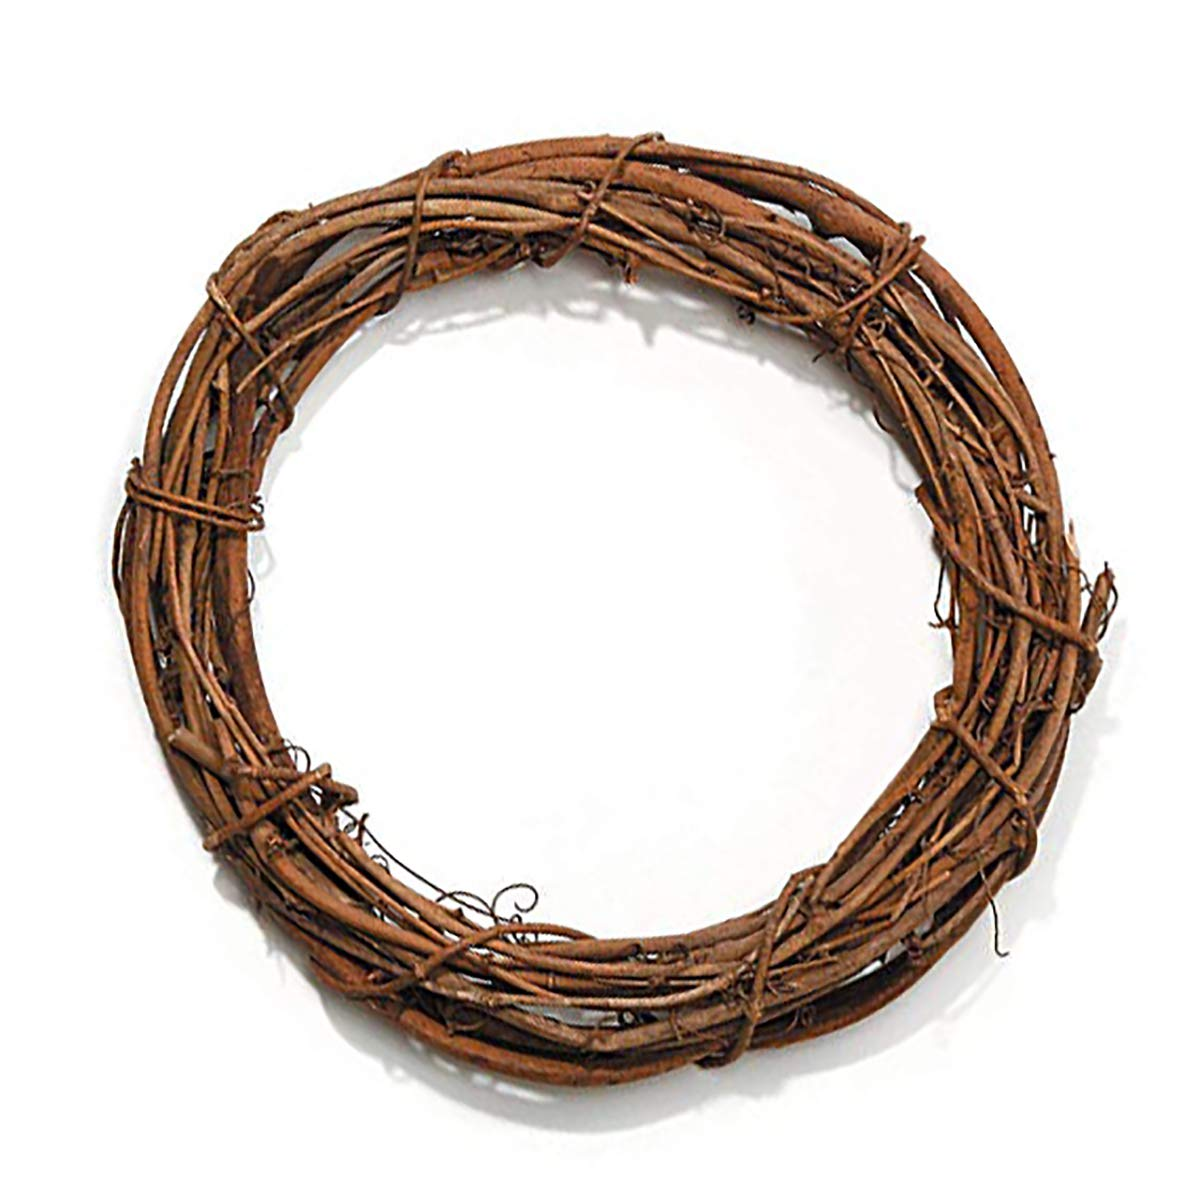 3 inch Natural Grapevine Wreath for DIY Crafts, 12-Pack Hanobo